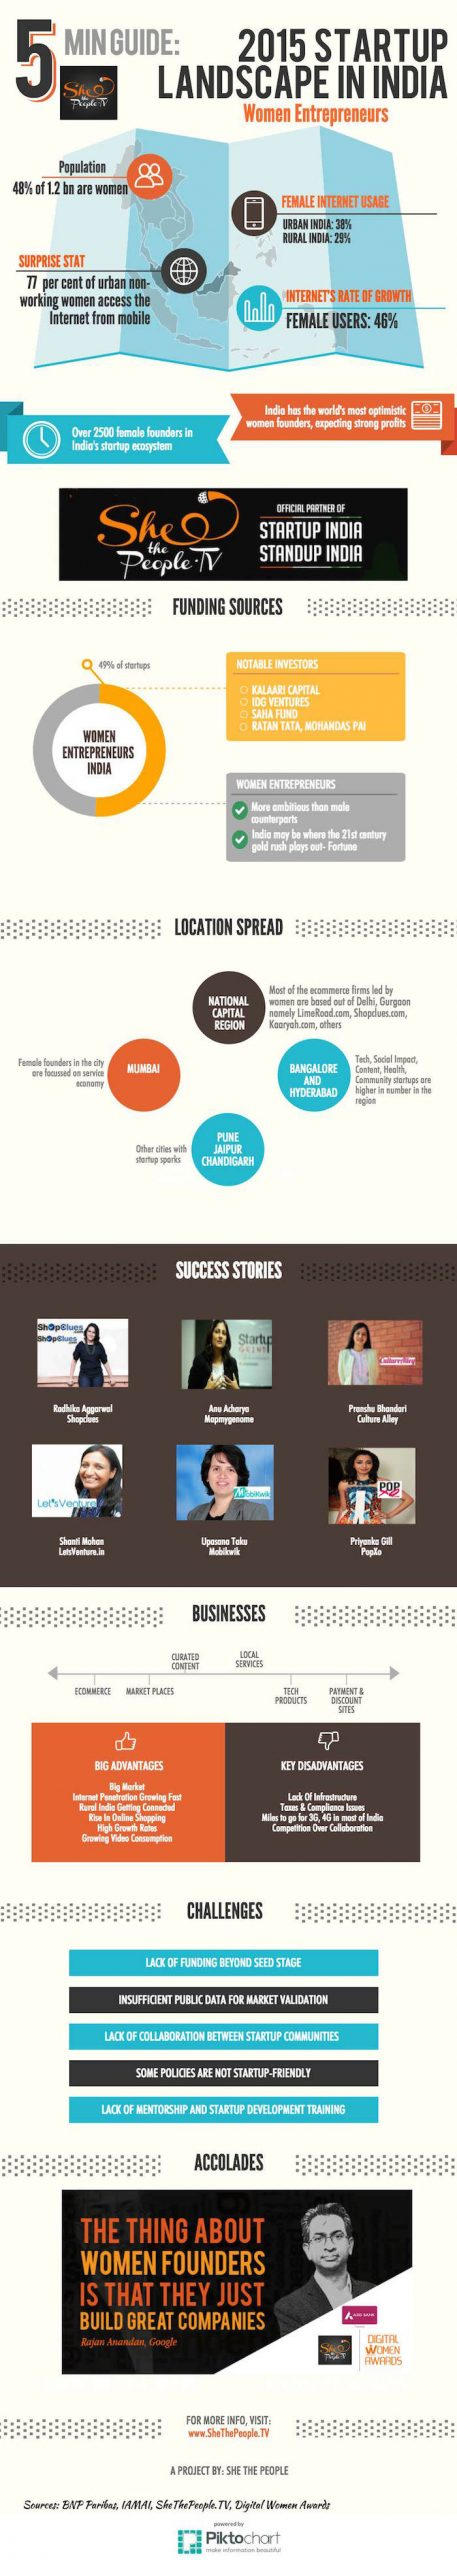 SheThePeople Women Entrepreneurs In India